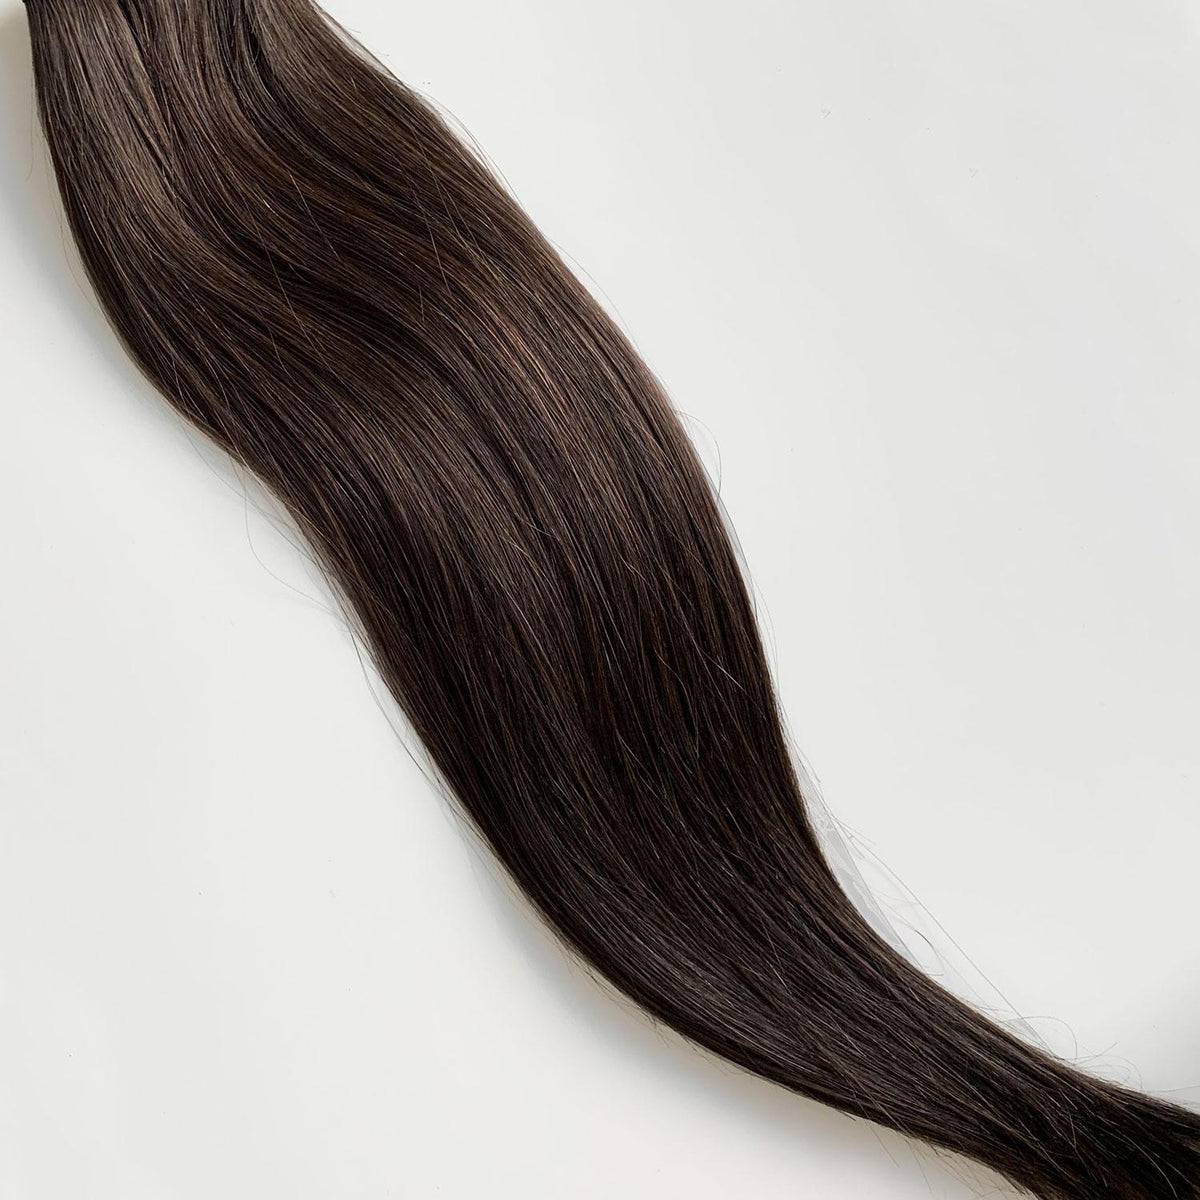 Hand_Tied_Halfsies - Halfsies Hand Tied Weft Extensions #2A